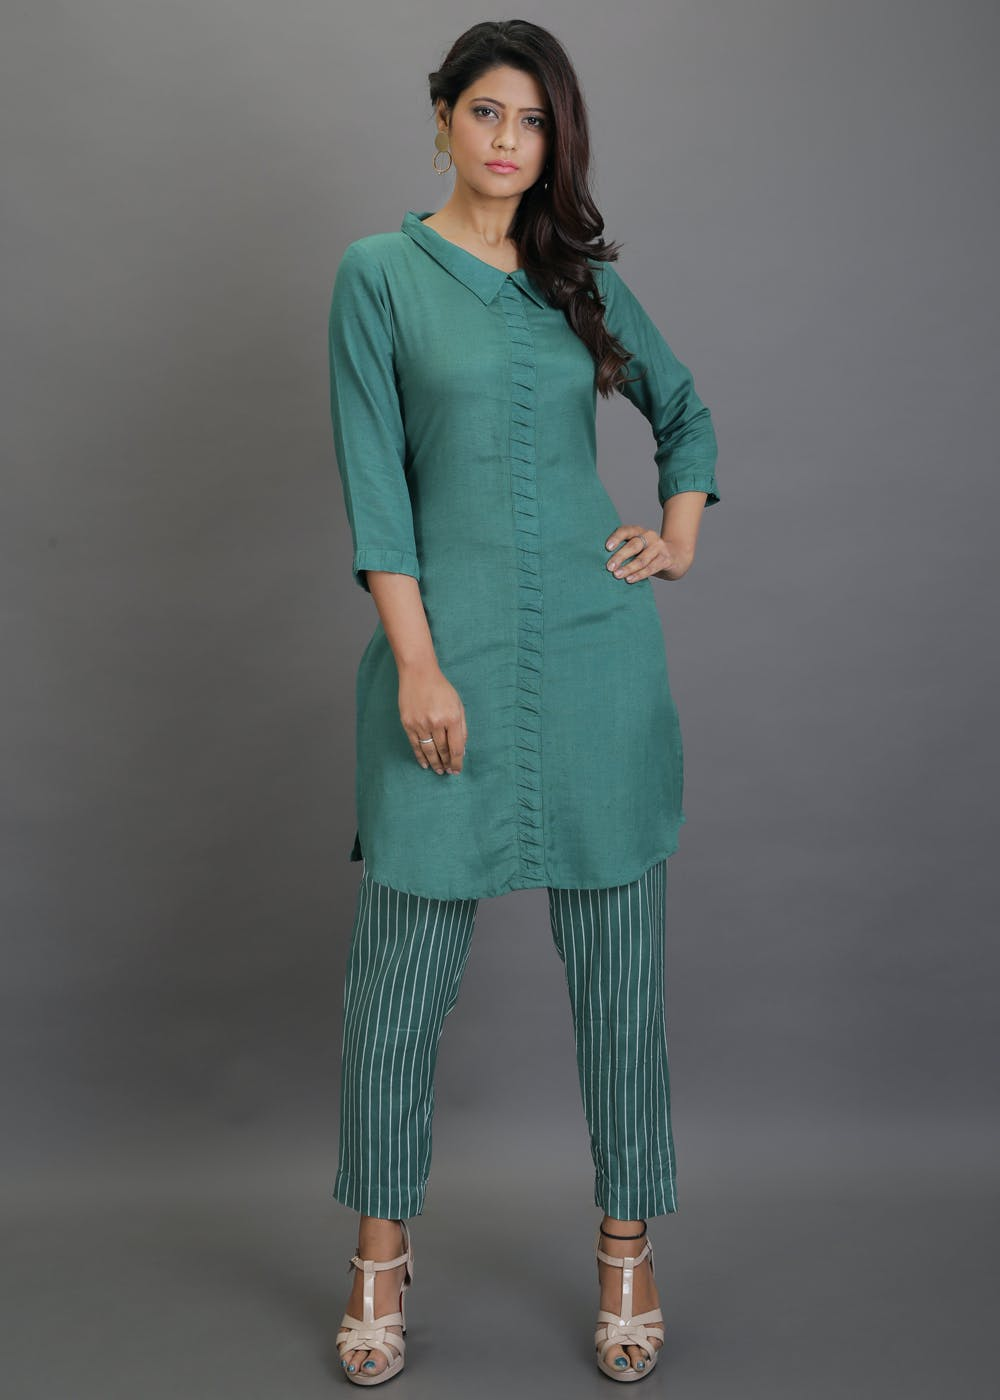 Ruffled Detail Short Kurta With Striped Pants Set - Green